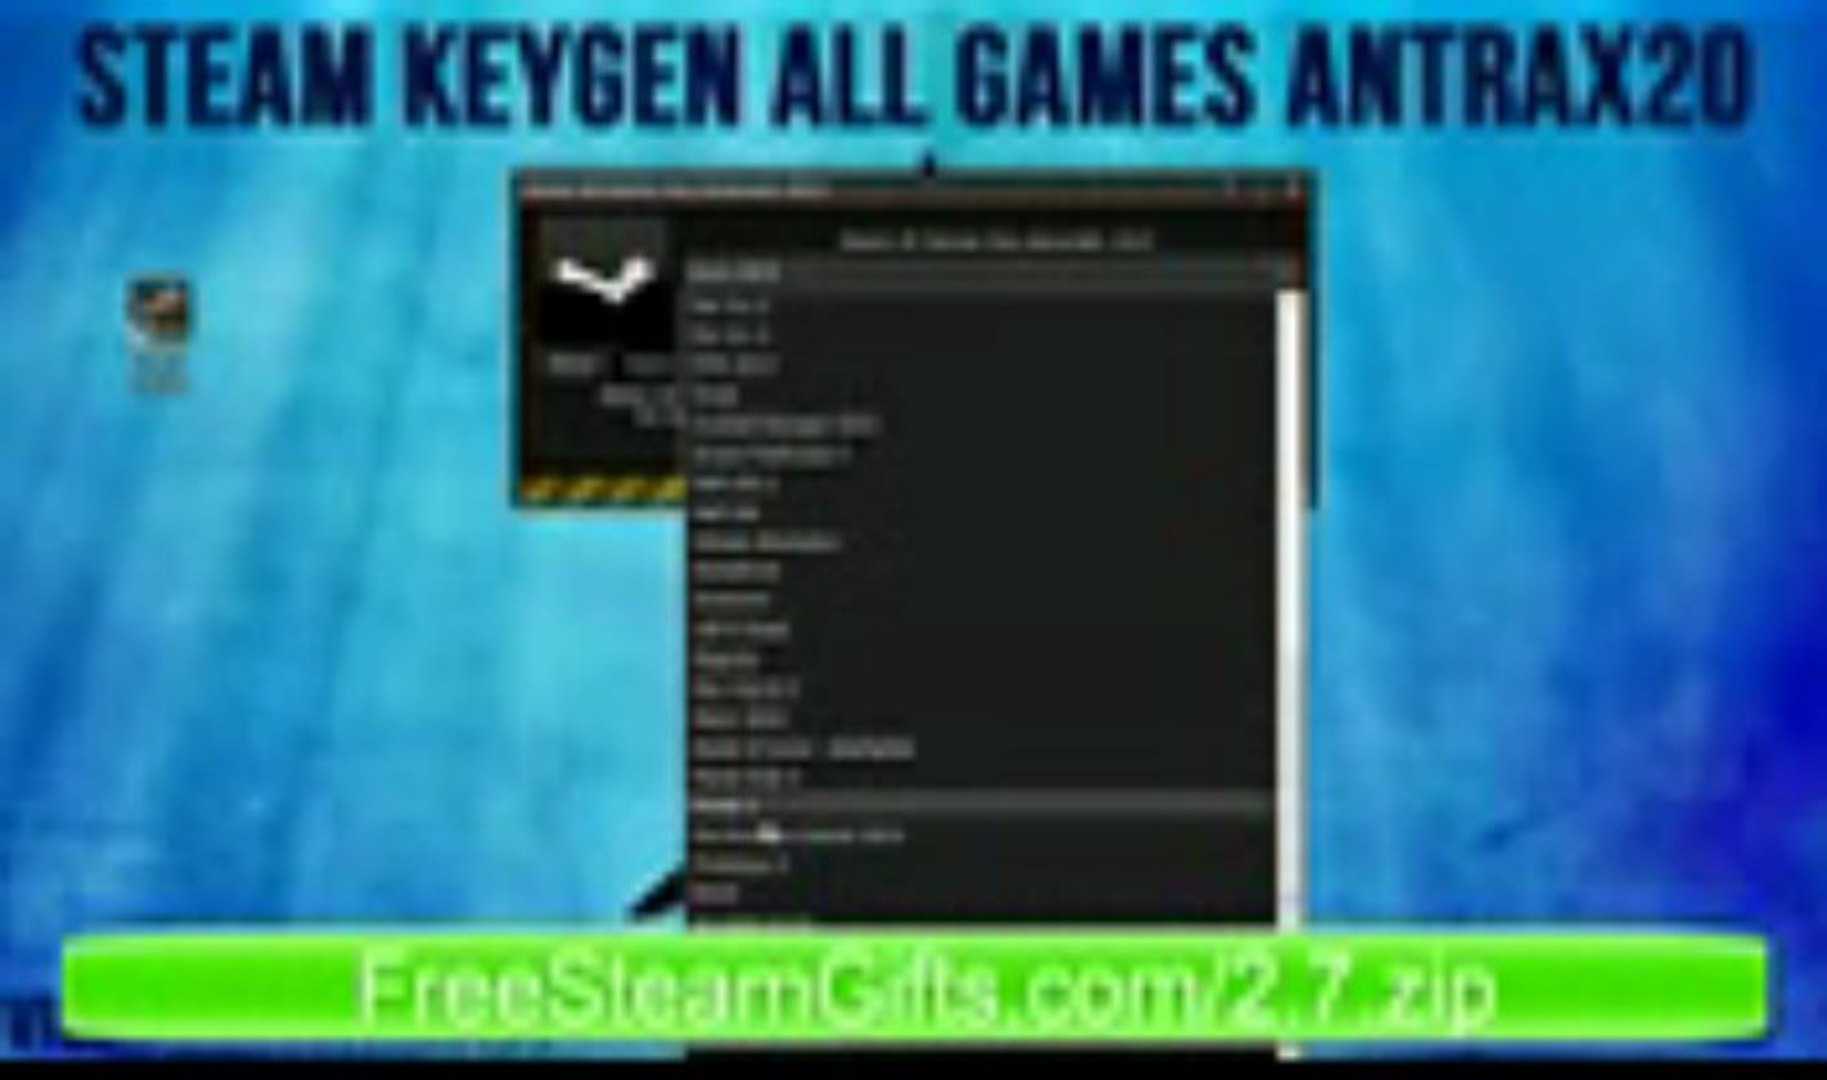 STEAM KEY GENERATOR 2013 - ALL GAMES 2013 - FREE DOWNLOAD [FREE] - HD + Proof! - 2013